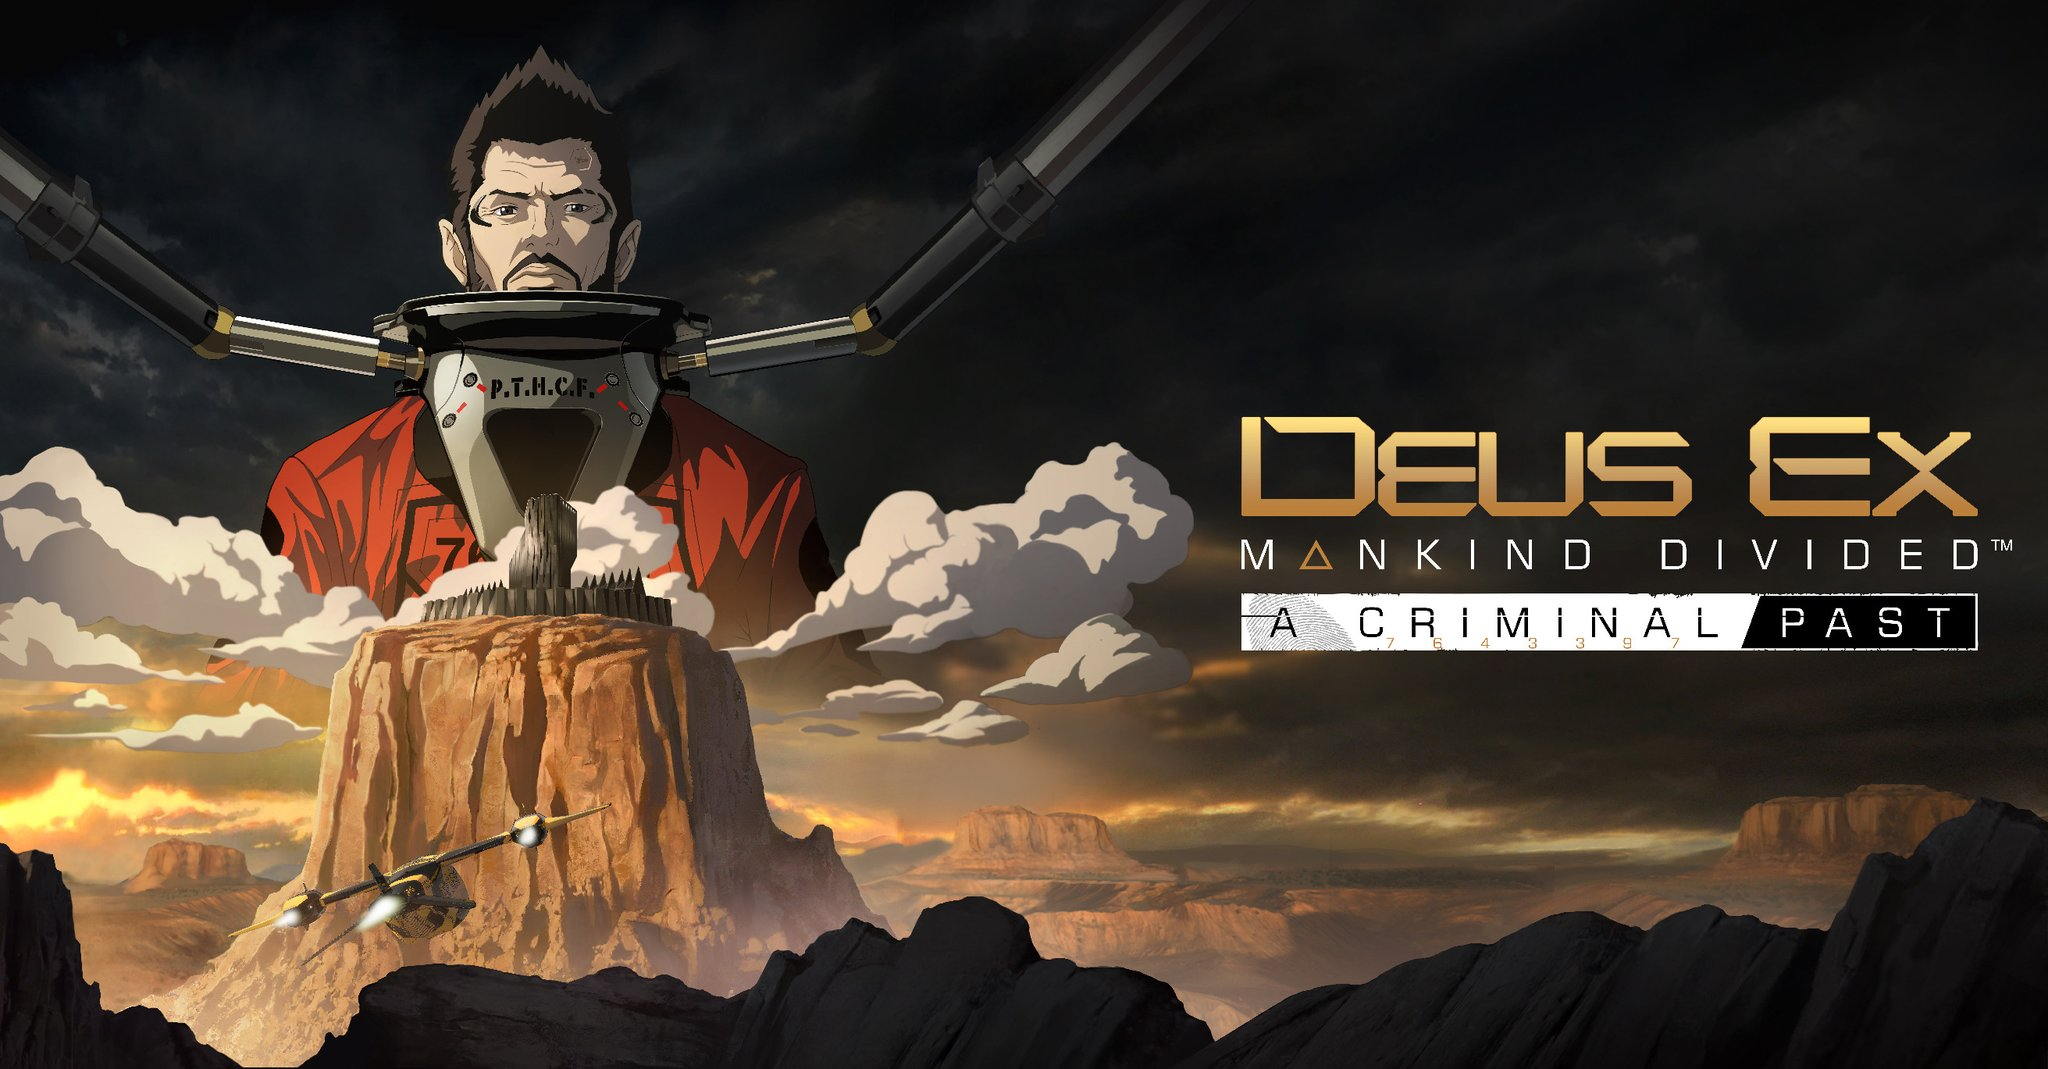 Mankind Divided Last DLC Release